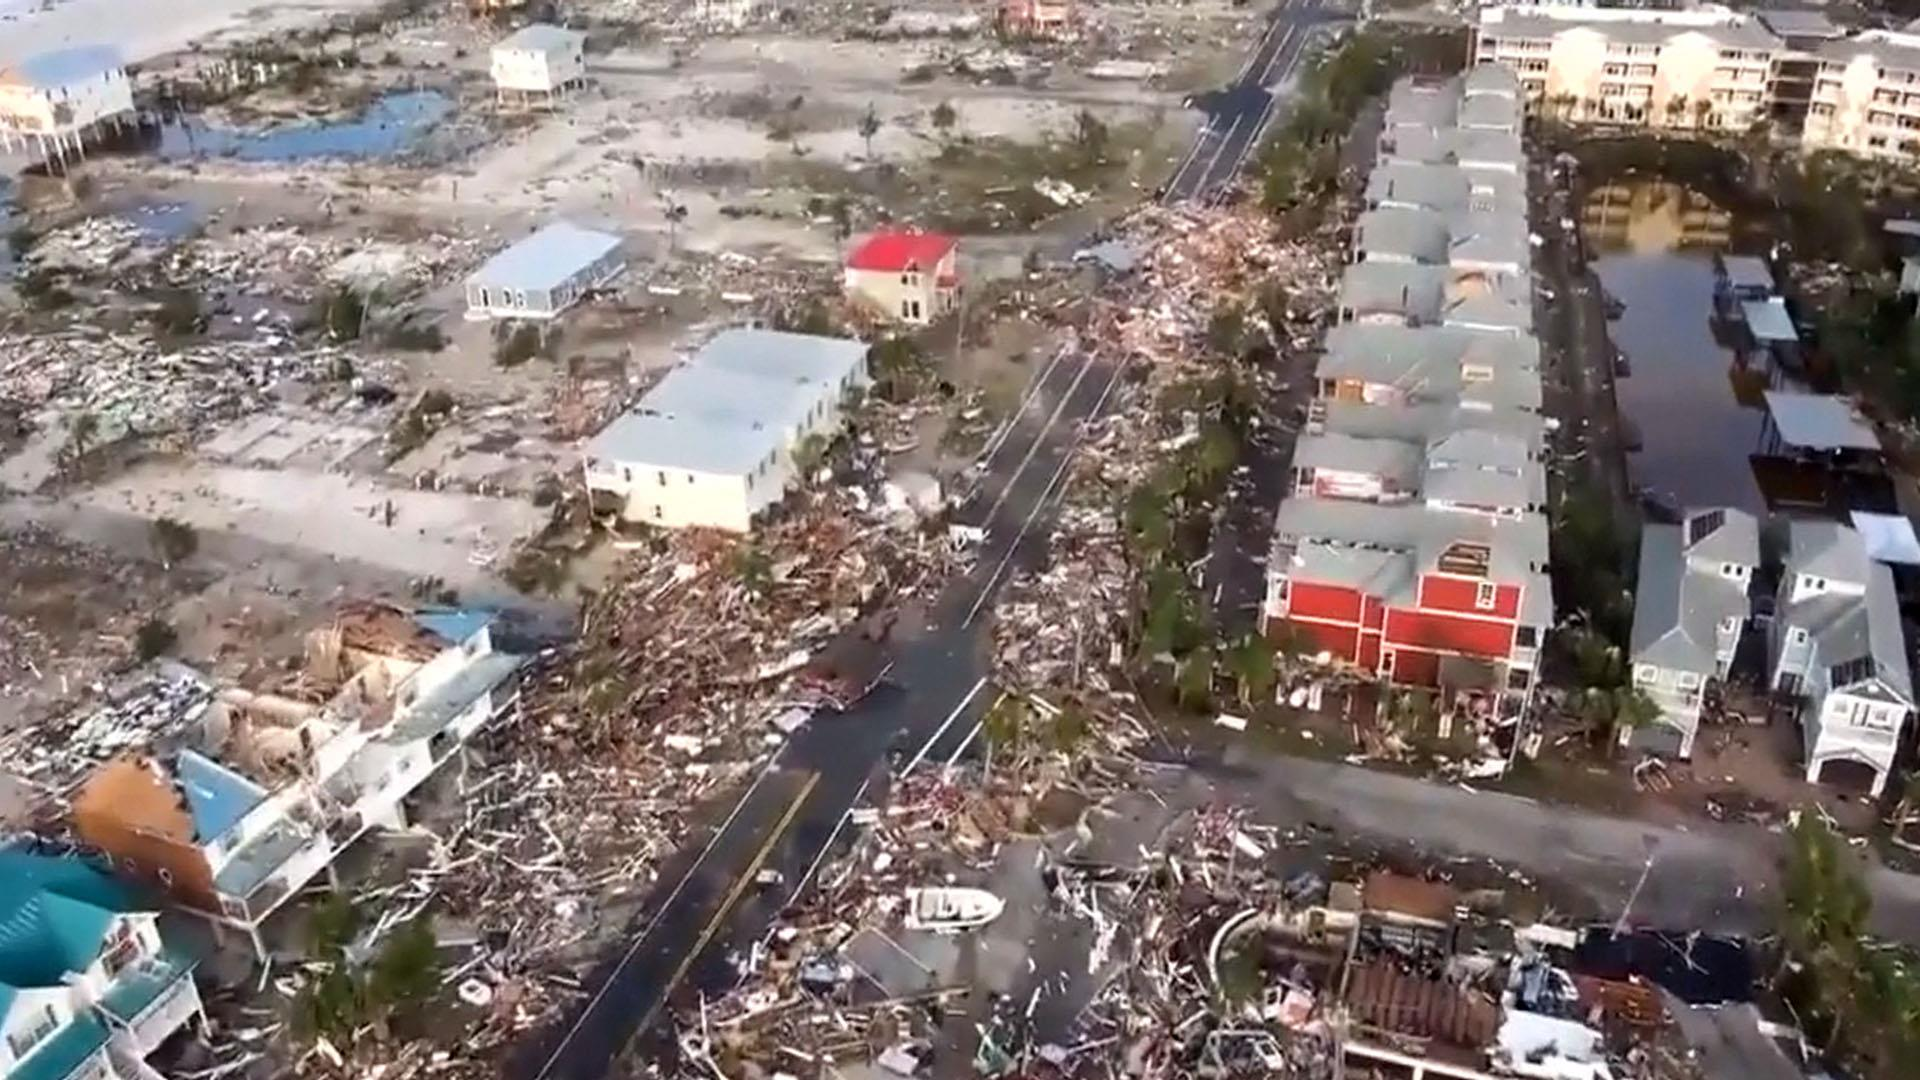 Hurricane Michael death toll rises as rescue crews struggle to access hard-hit areas